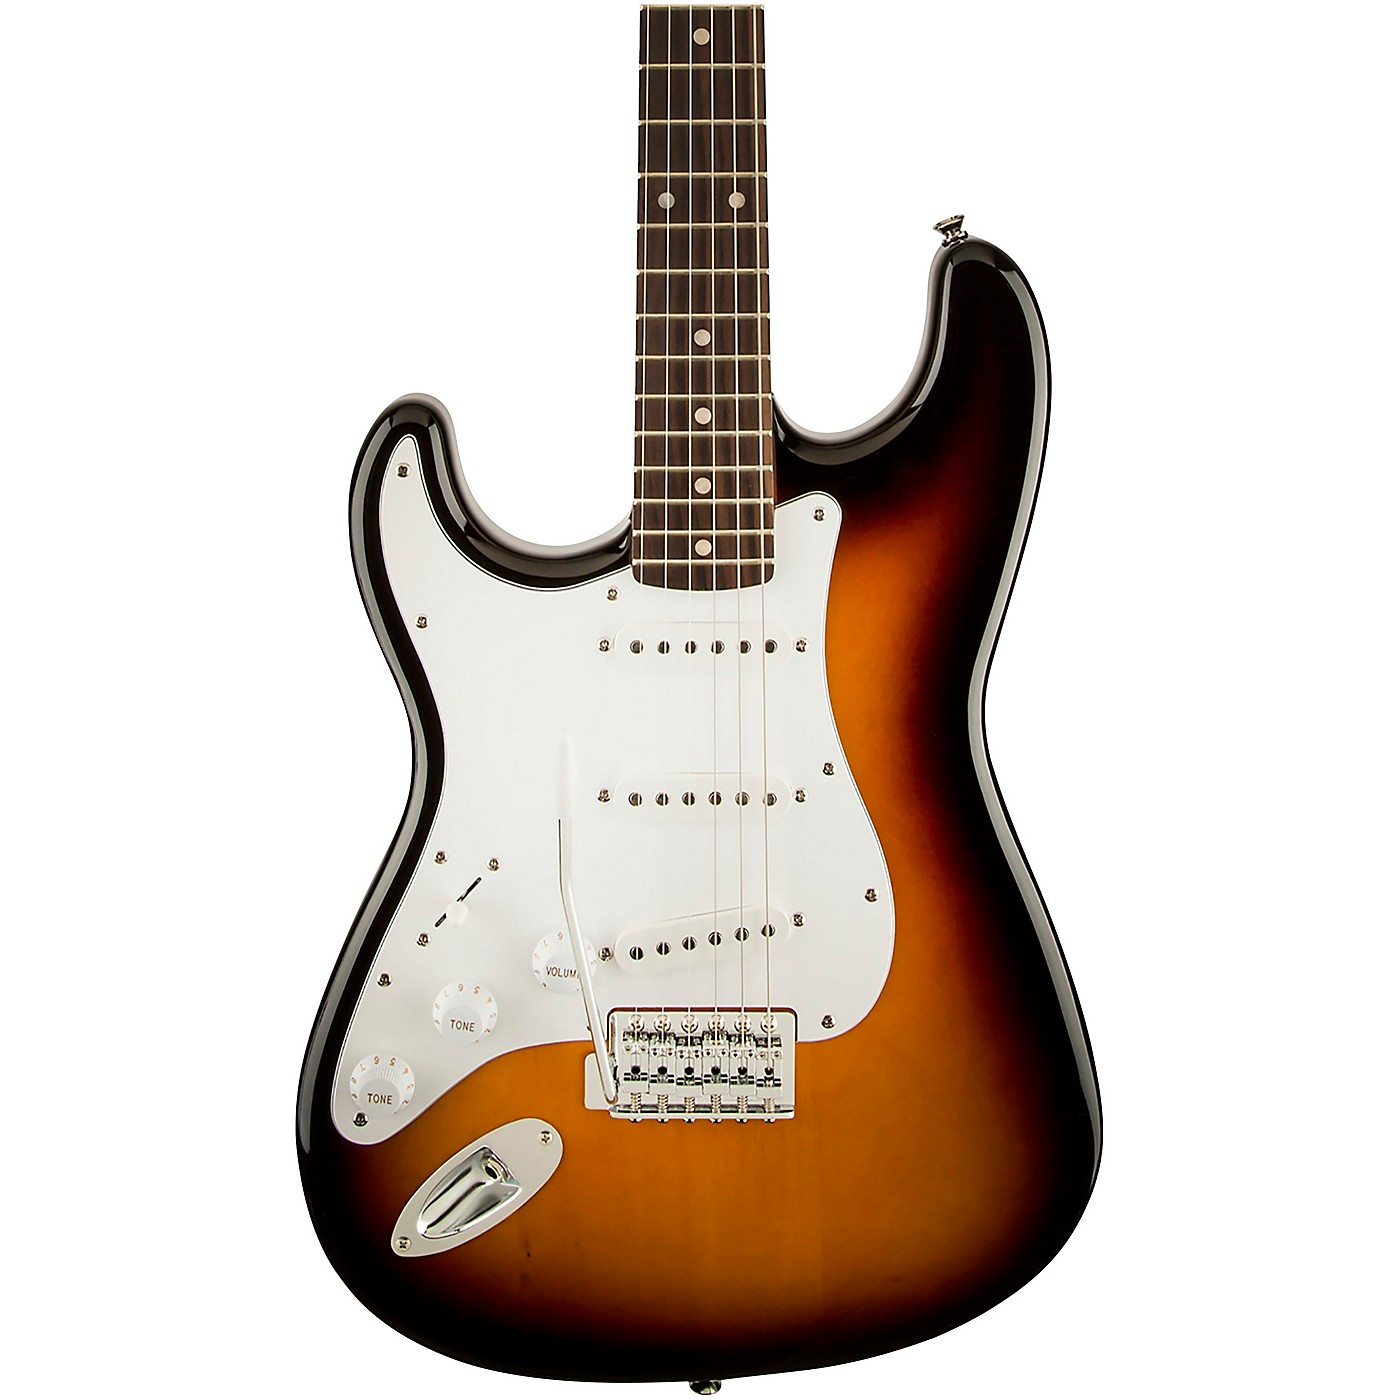 Squier Affinity Stratocaster Left-Handed Electric Guitar thumbnail